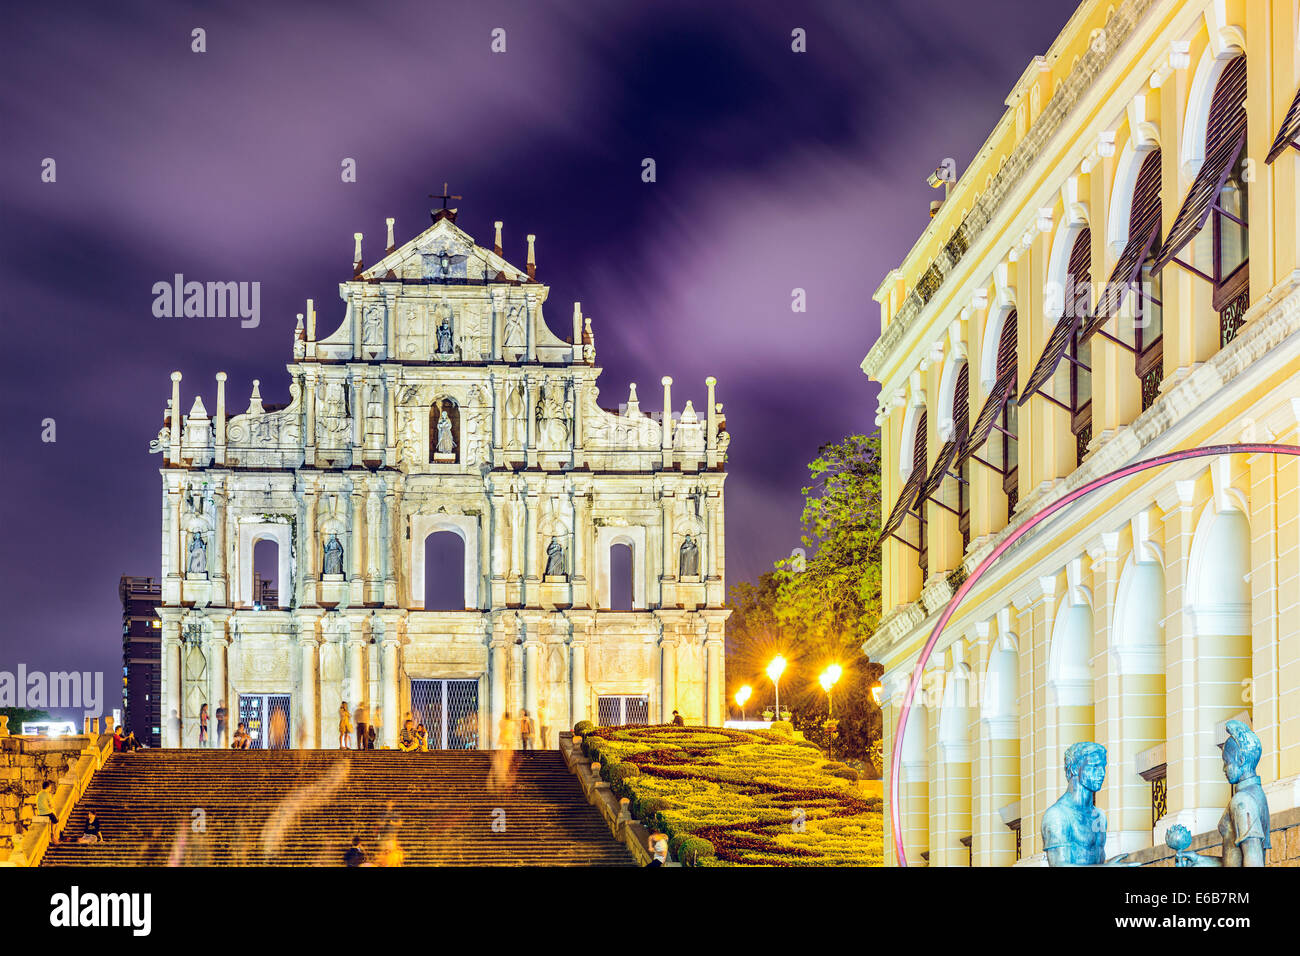 Macao, Chine dans les ruines de la Cathédrale St Paul. Photo Stock